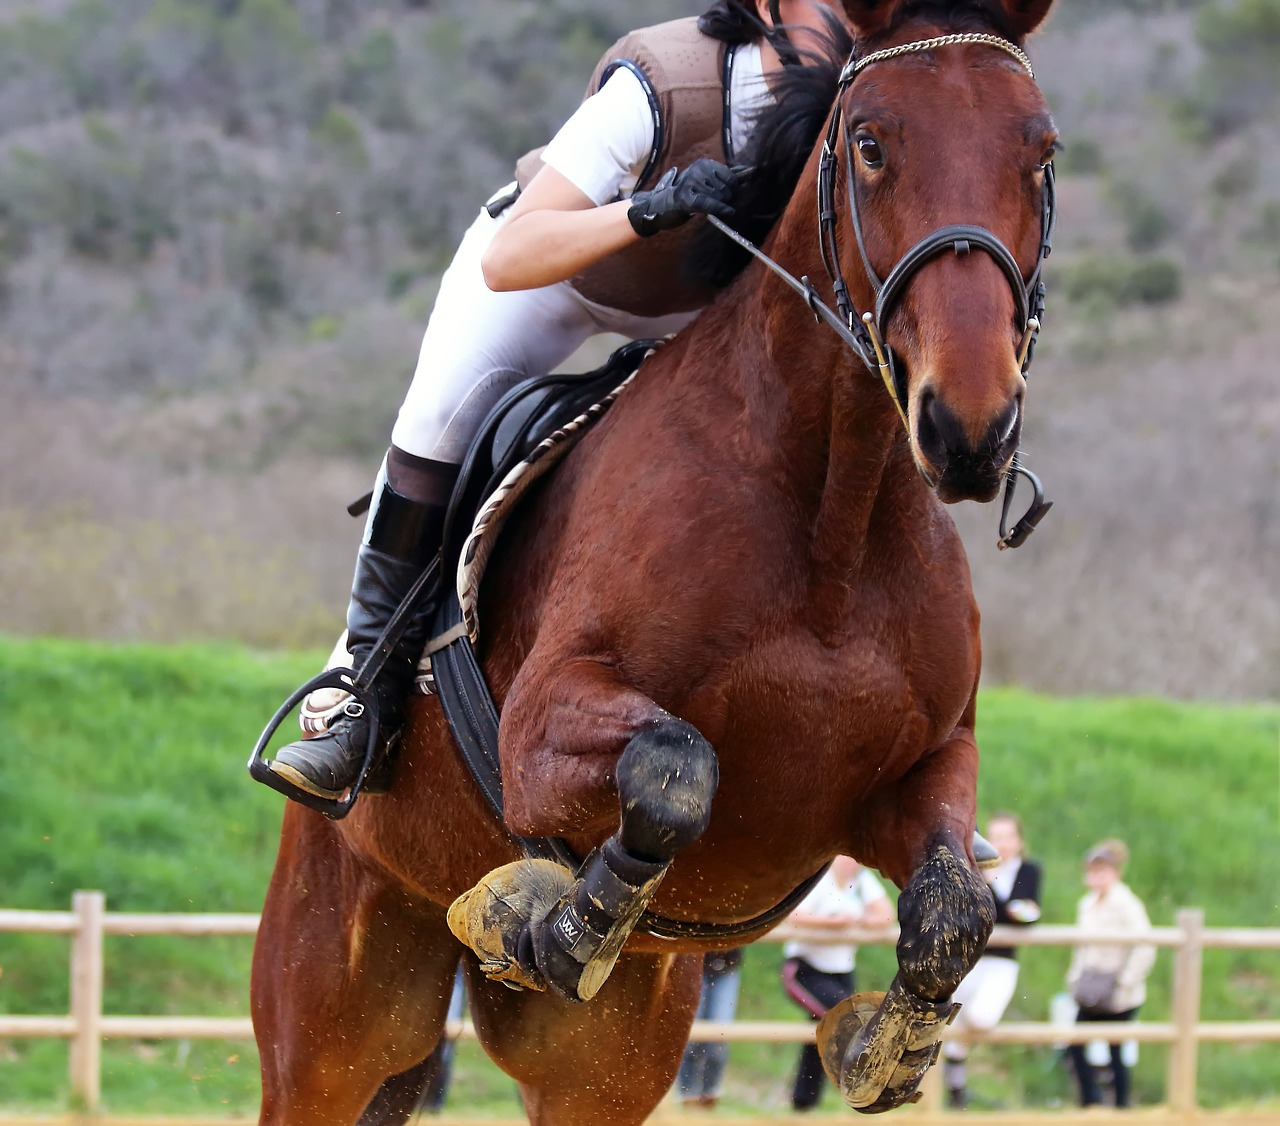 Woman competitively racing a horse.